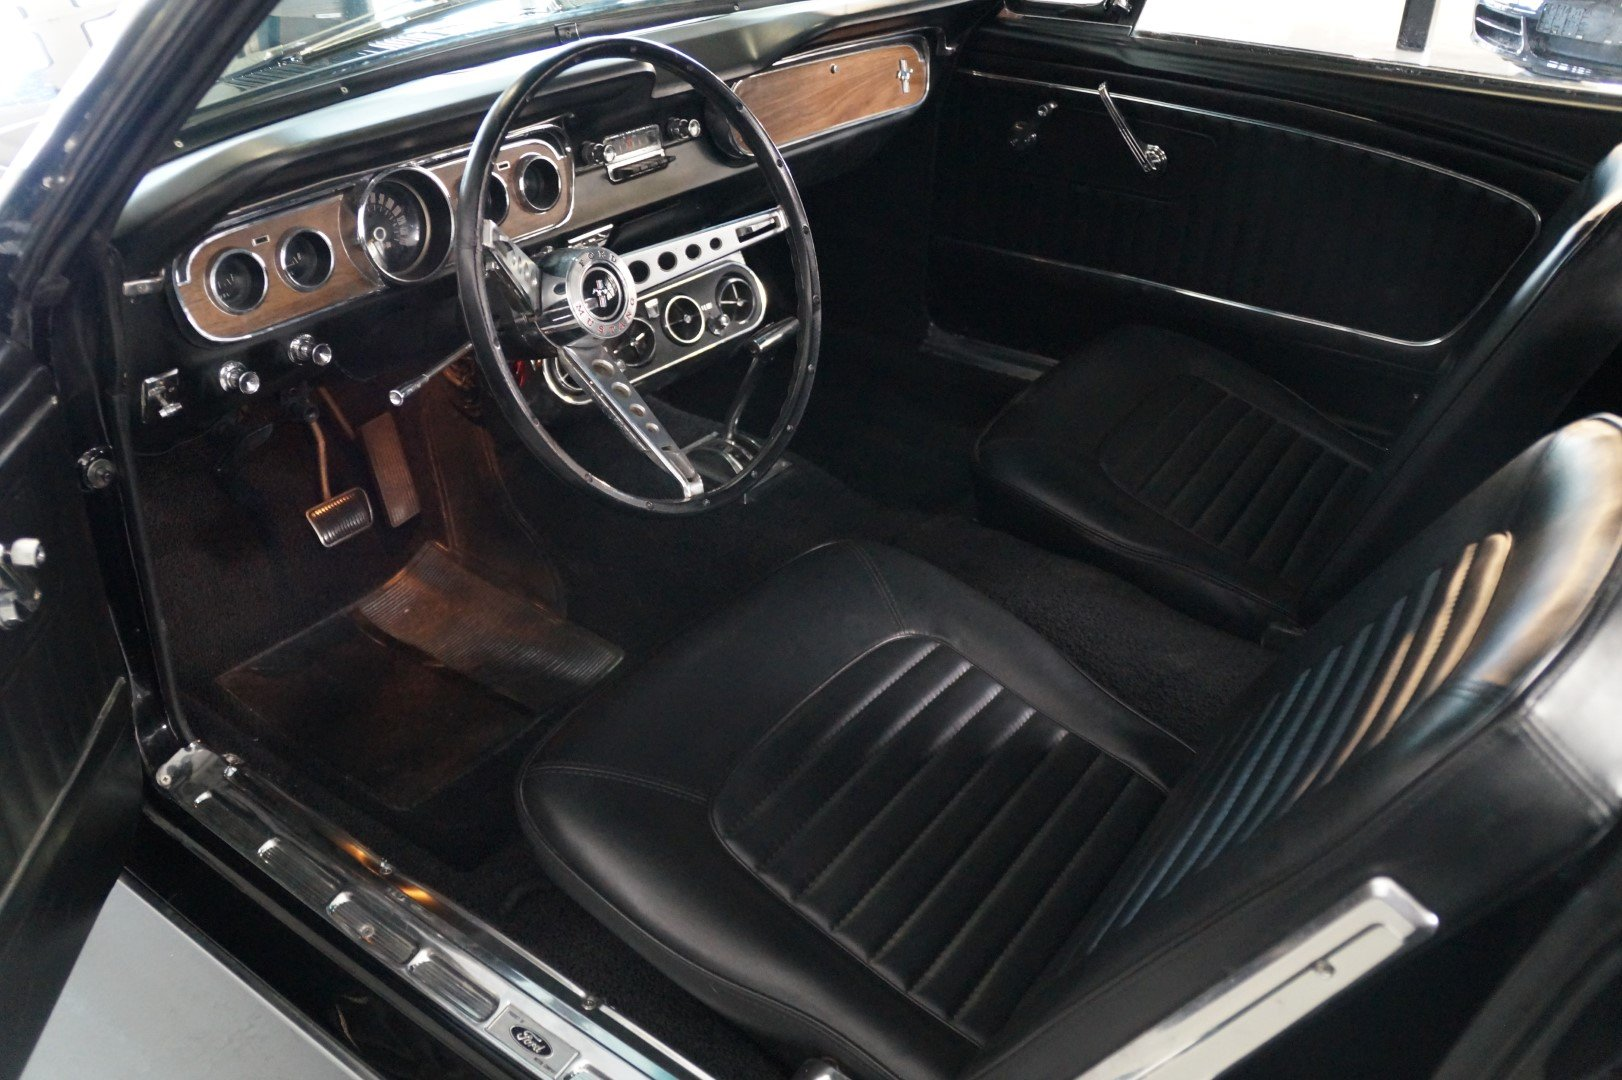 FORD MUSTANG Convertible Triple Black (1965) For Sale (picture 4 of 6)